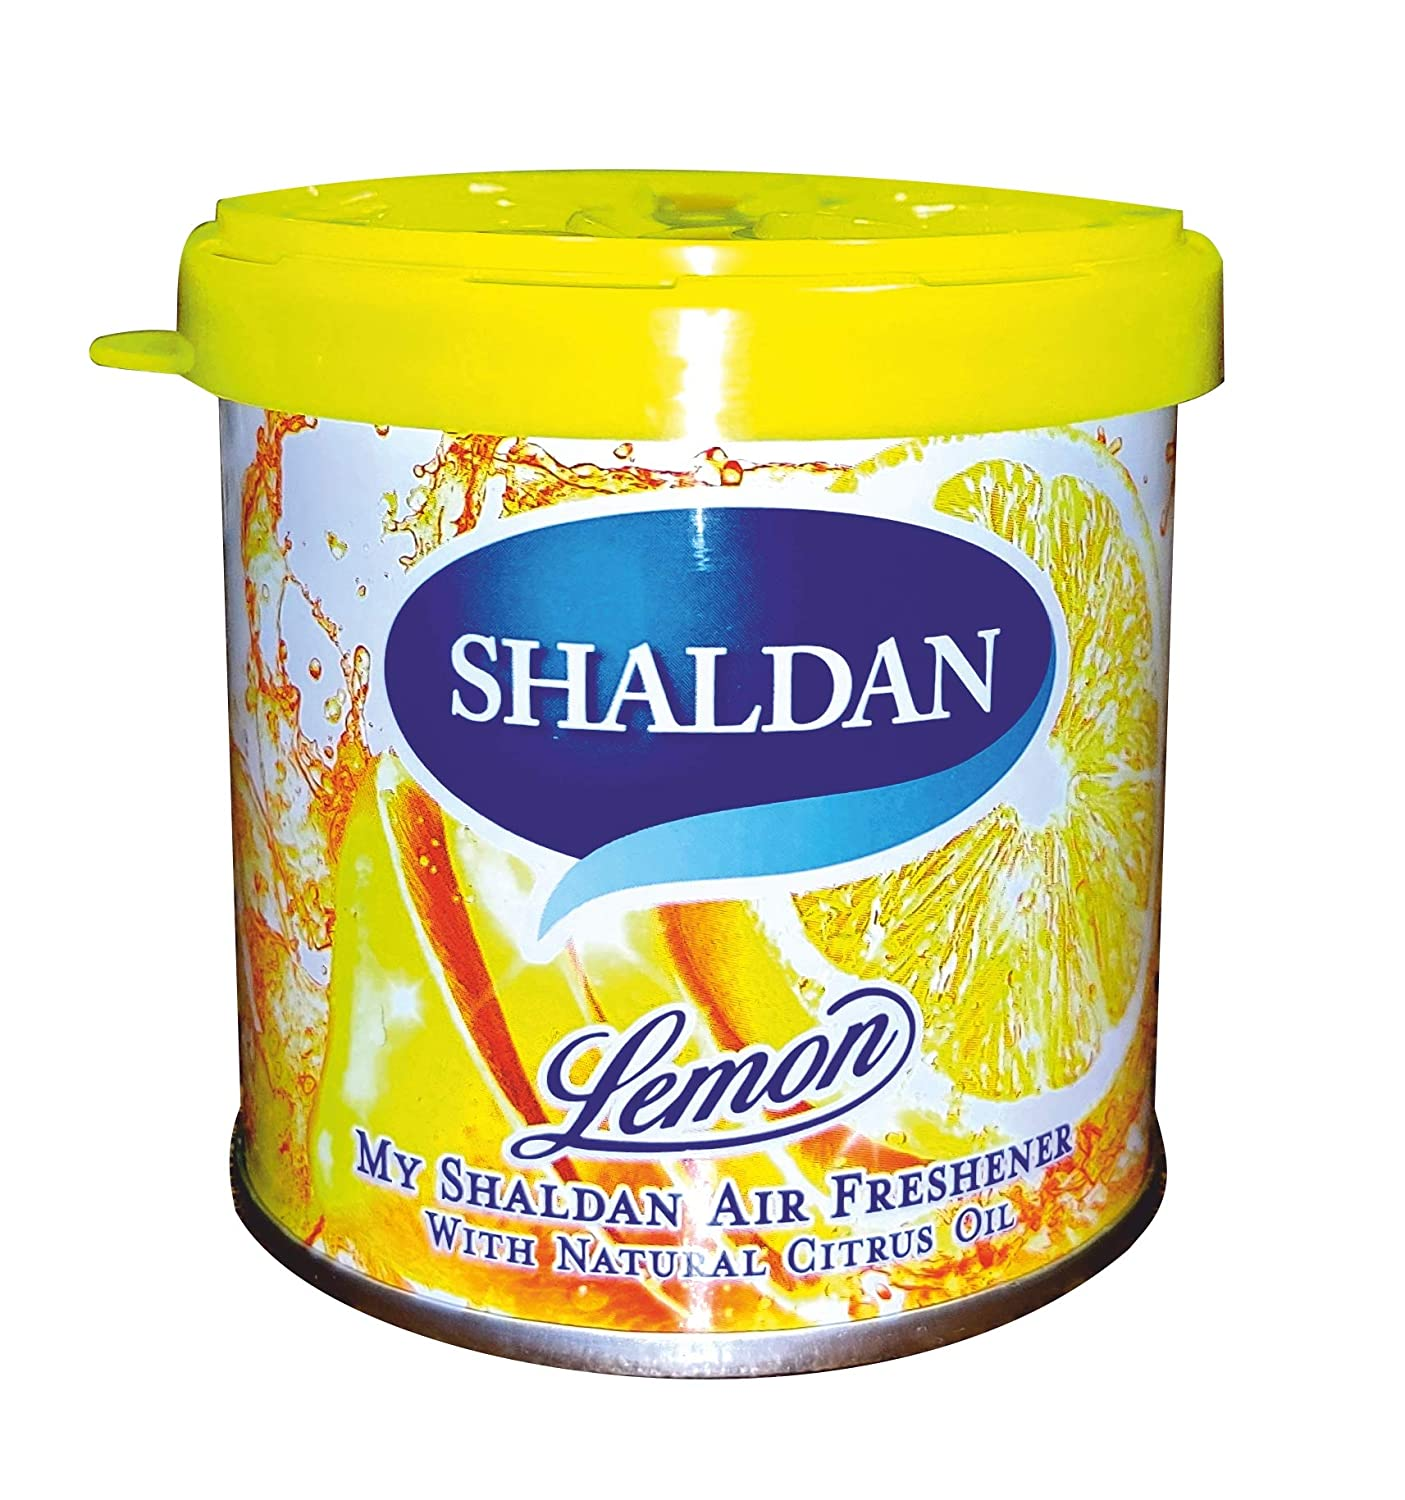 My Shaldan Lemon Car Air Freshener